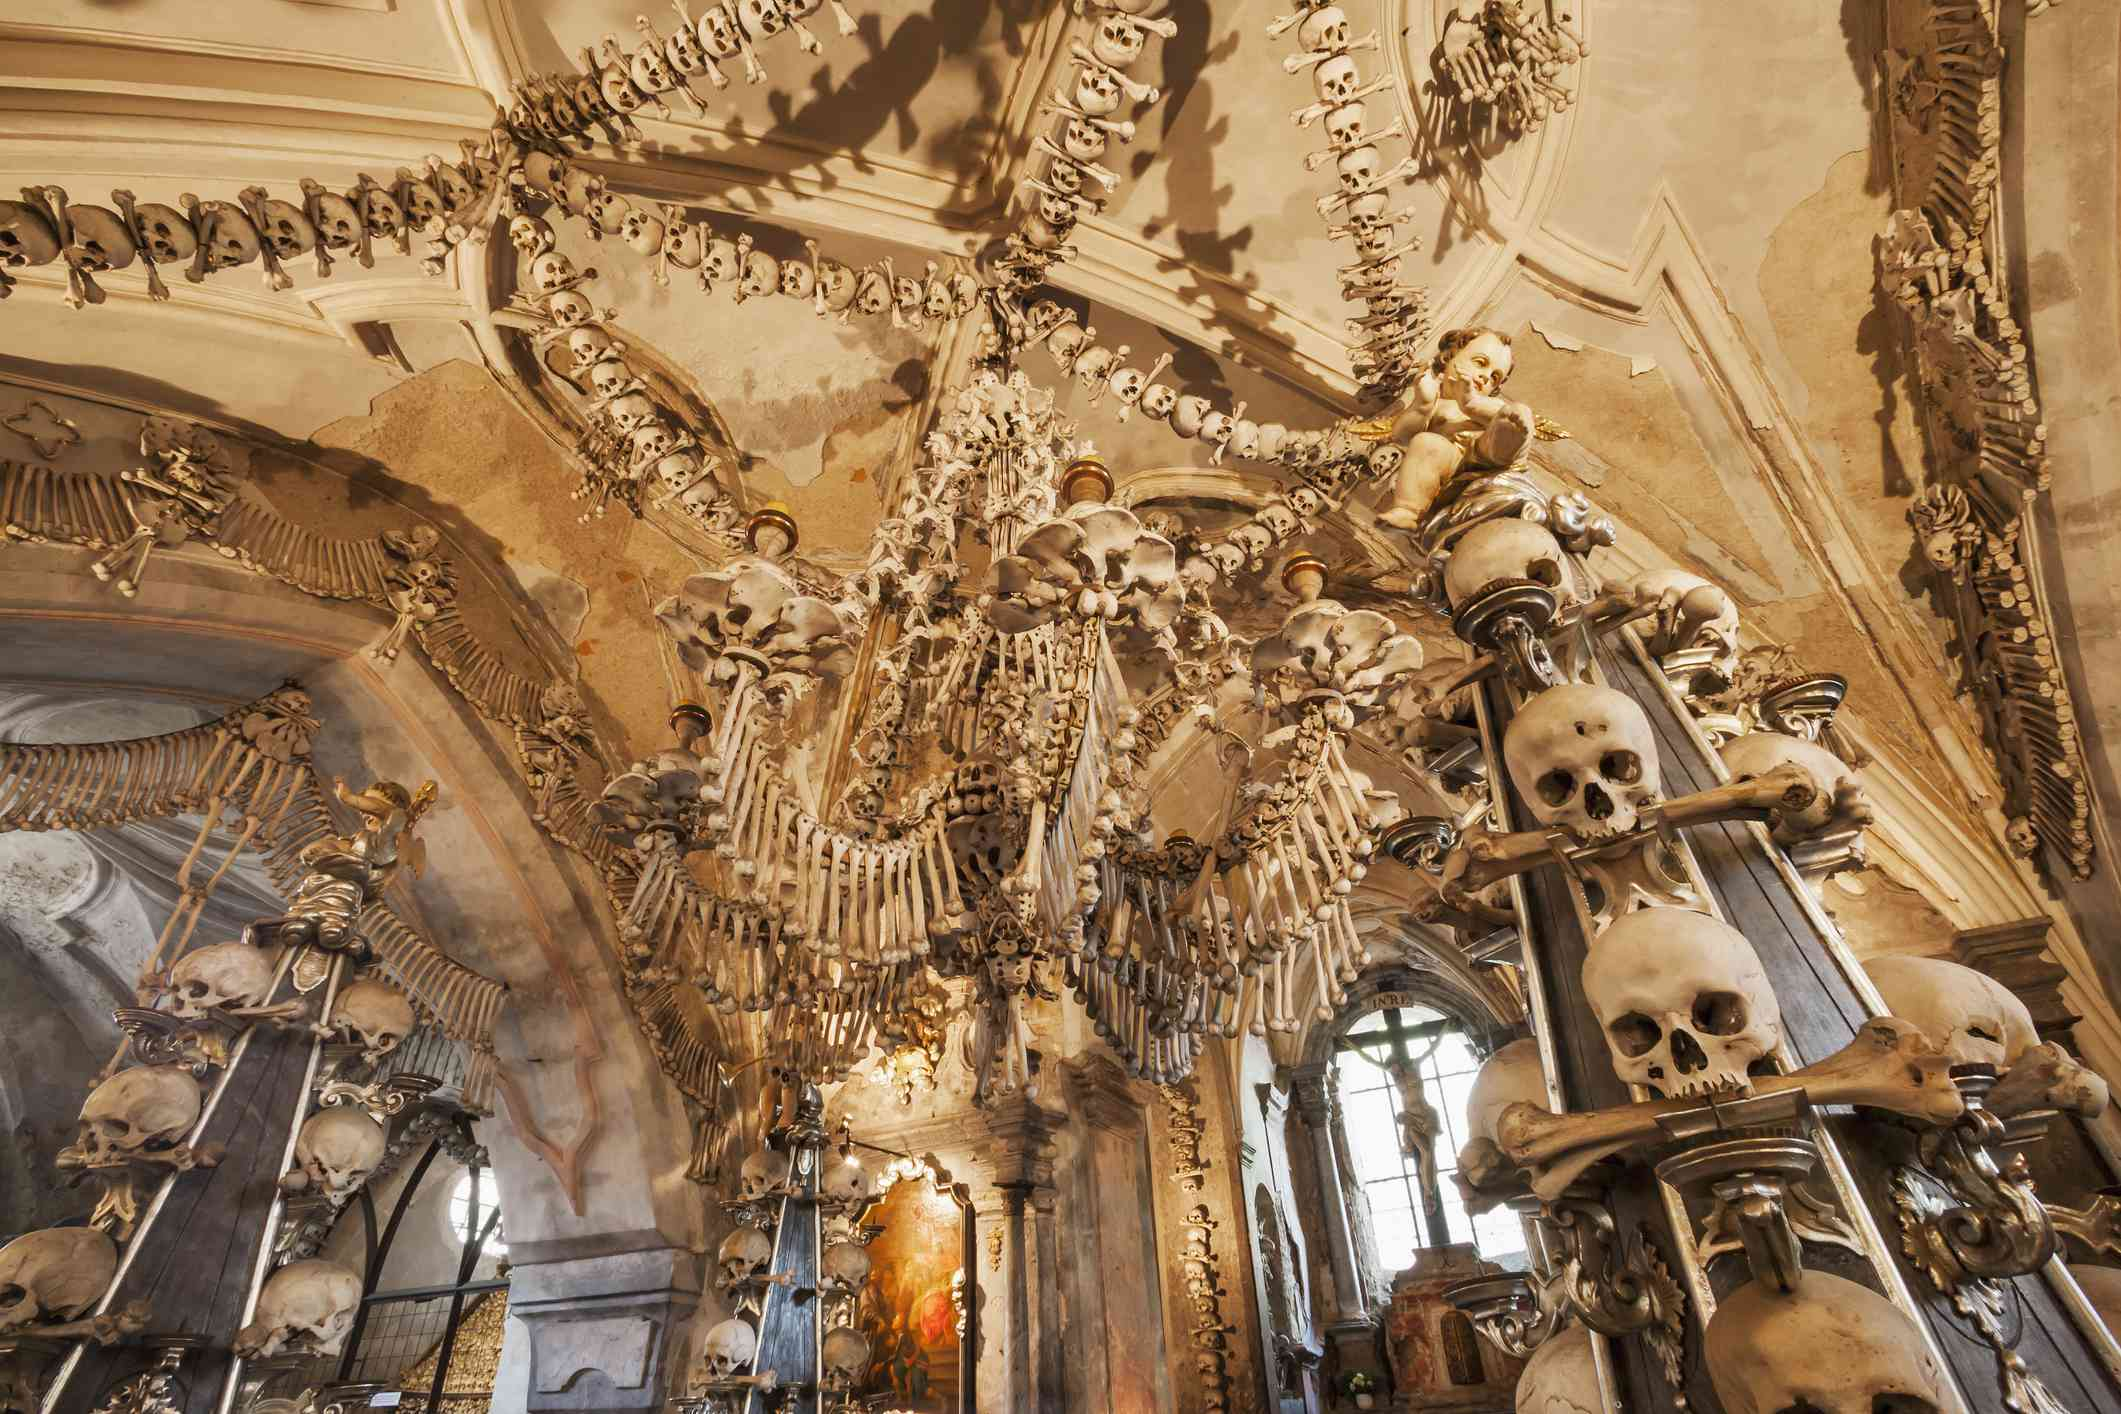 low angle of a vaulted cathedral ceiling decorated with hundreds of human skulls and long bones